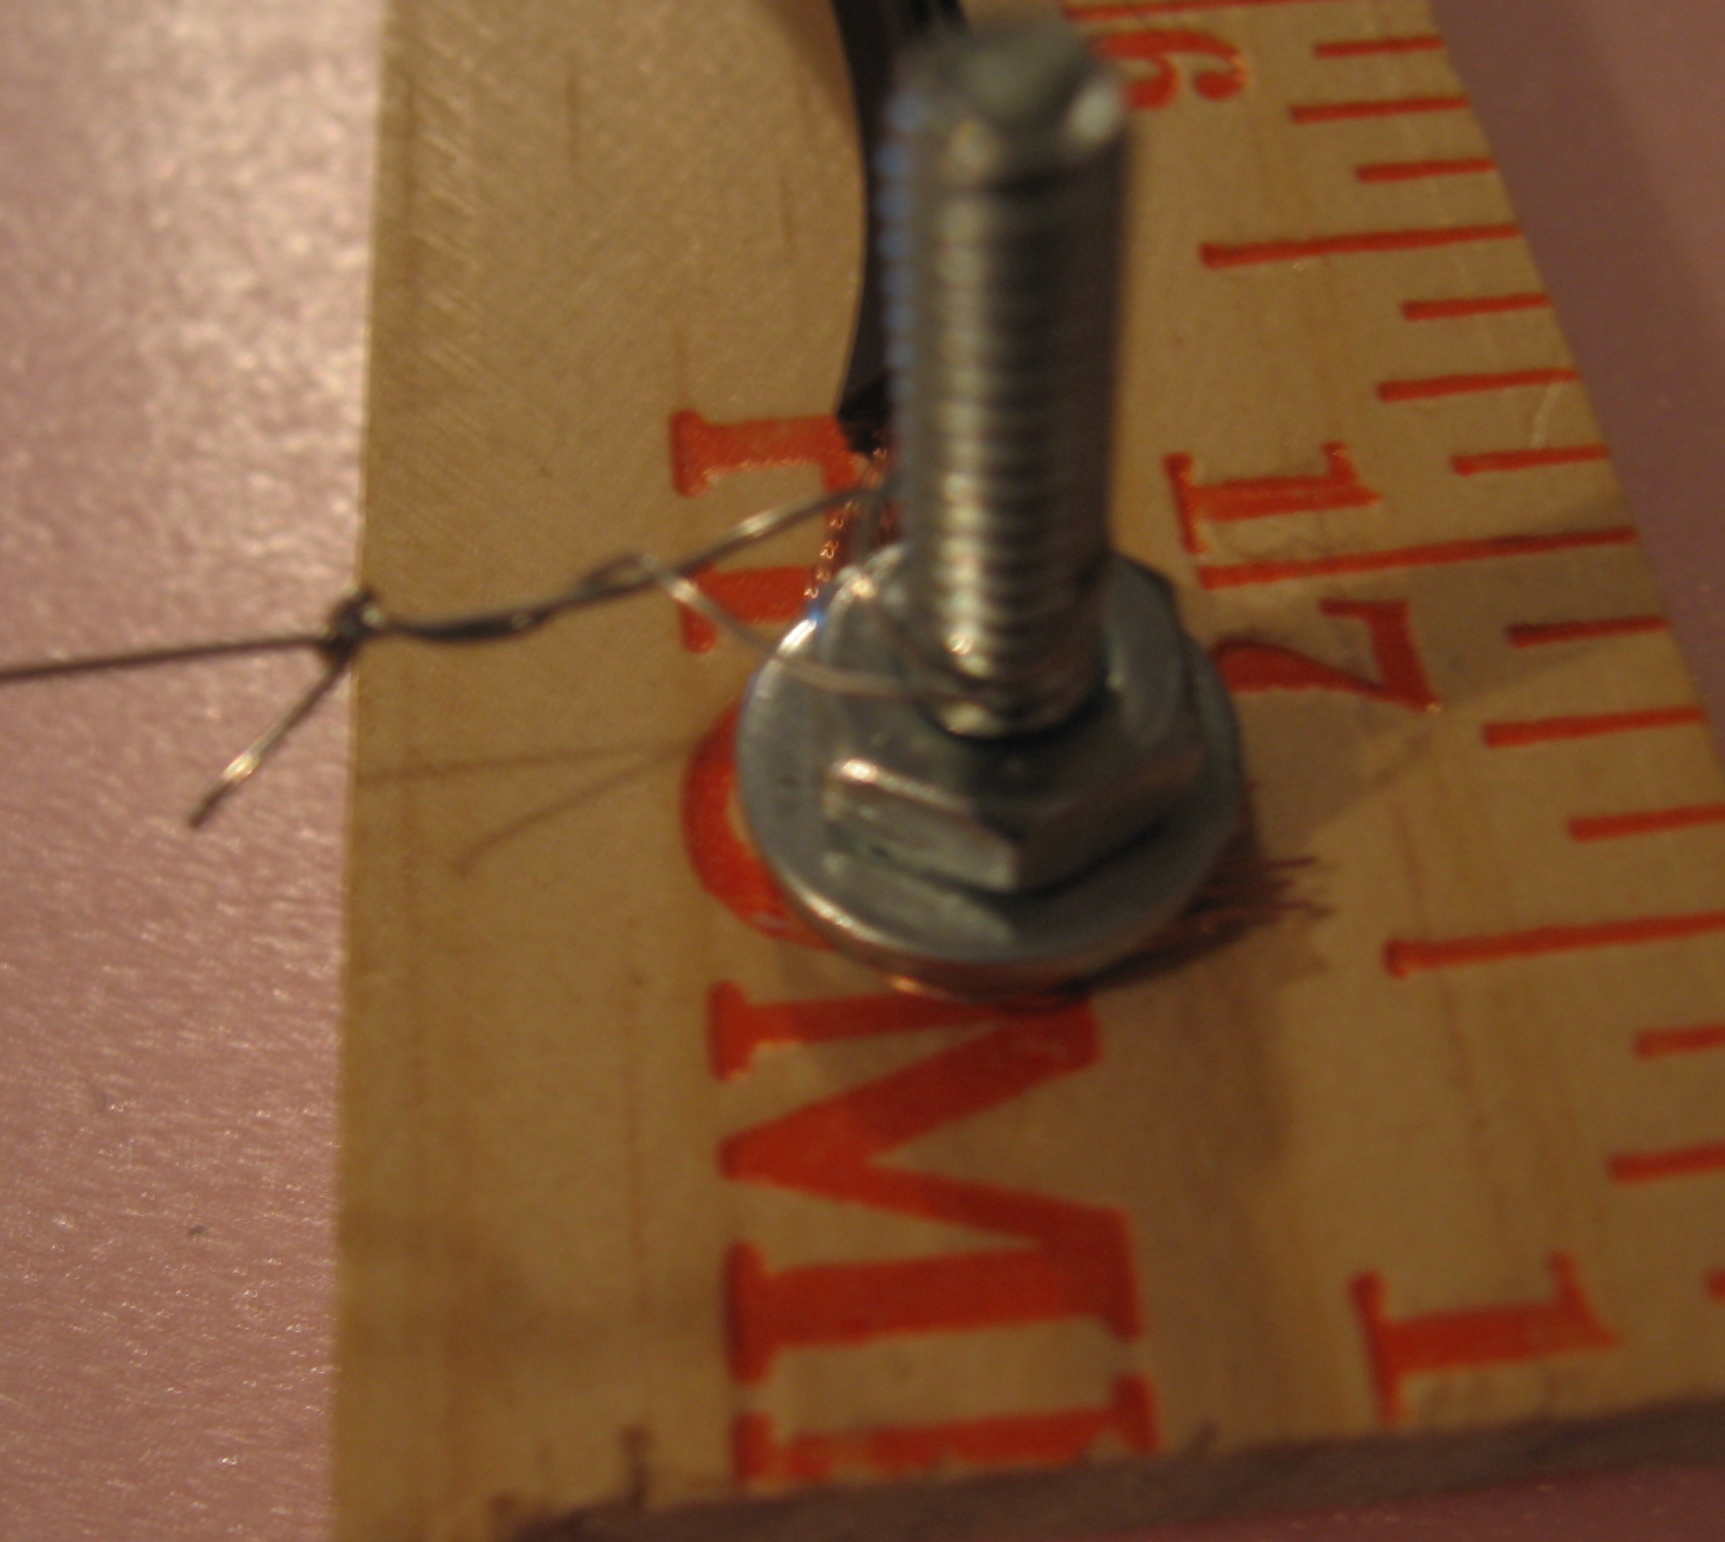 Picture of Attaching the Hot Wire